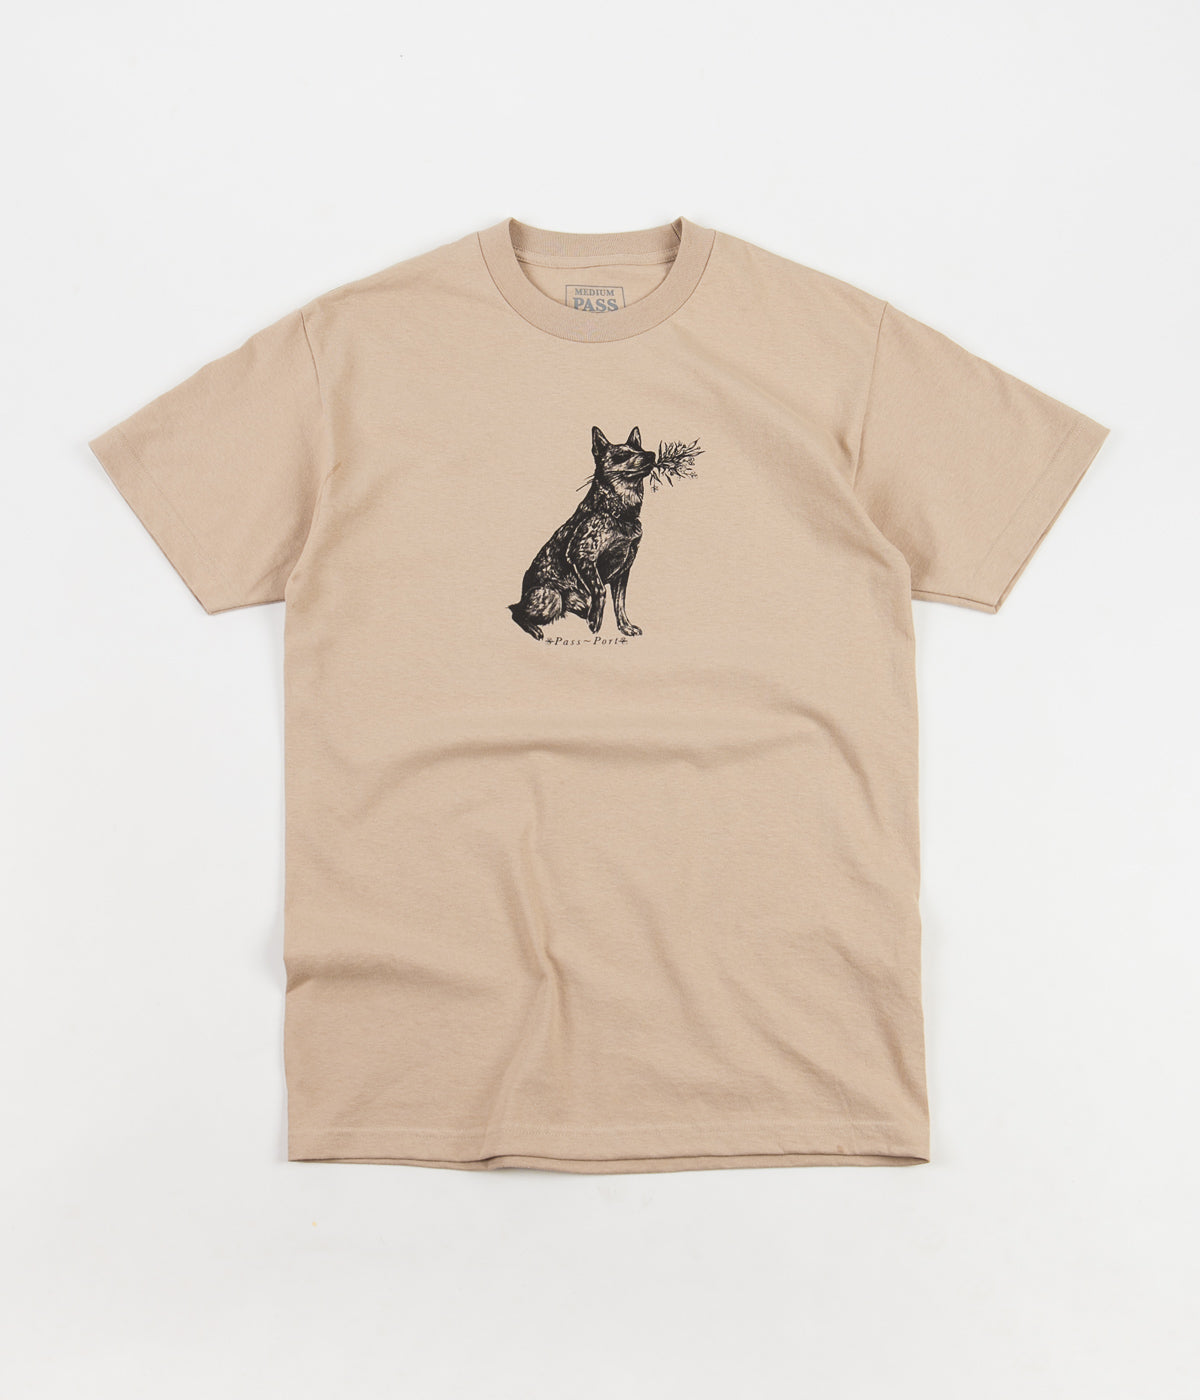 Pass Port Doggo T-Shirt - Sand